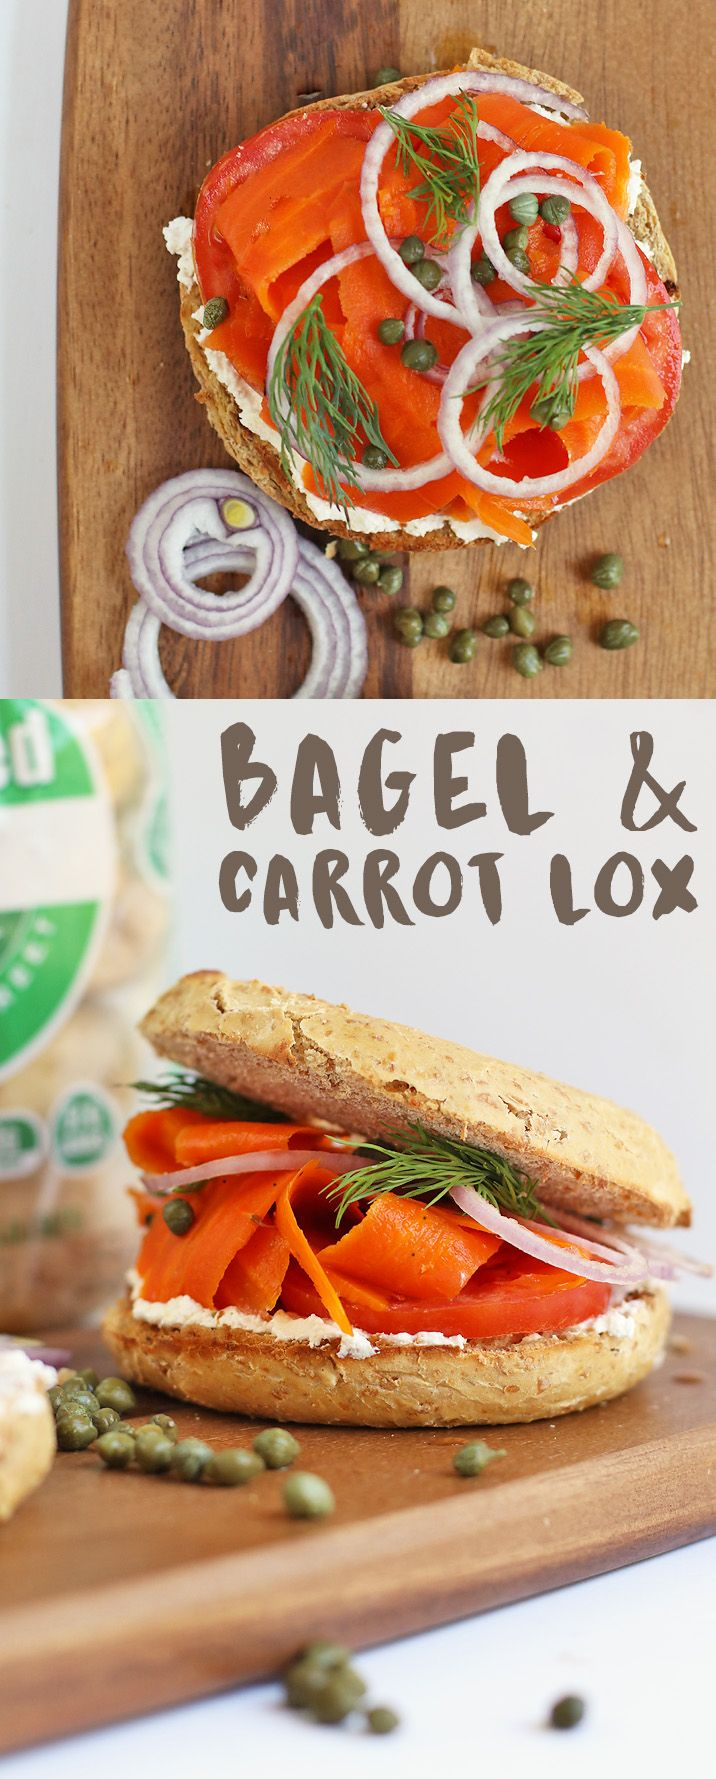 This Vegan Bagel And Lox Sandwich Is Made With Roasted And Marinated Carrots Vegan Cream Cheese And Fresh He Vegan Bagel Vegan Brunch Vegan Breakfast Recipes